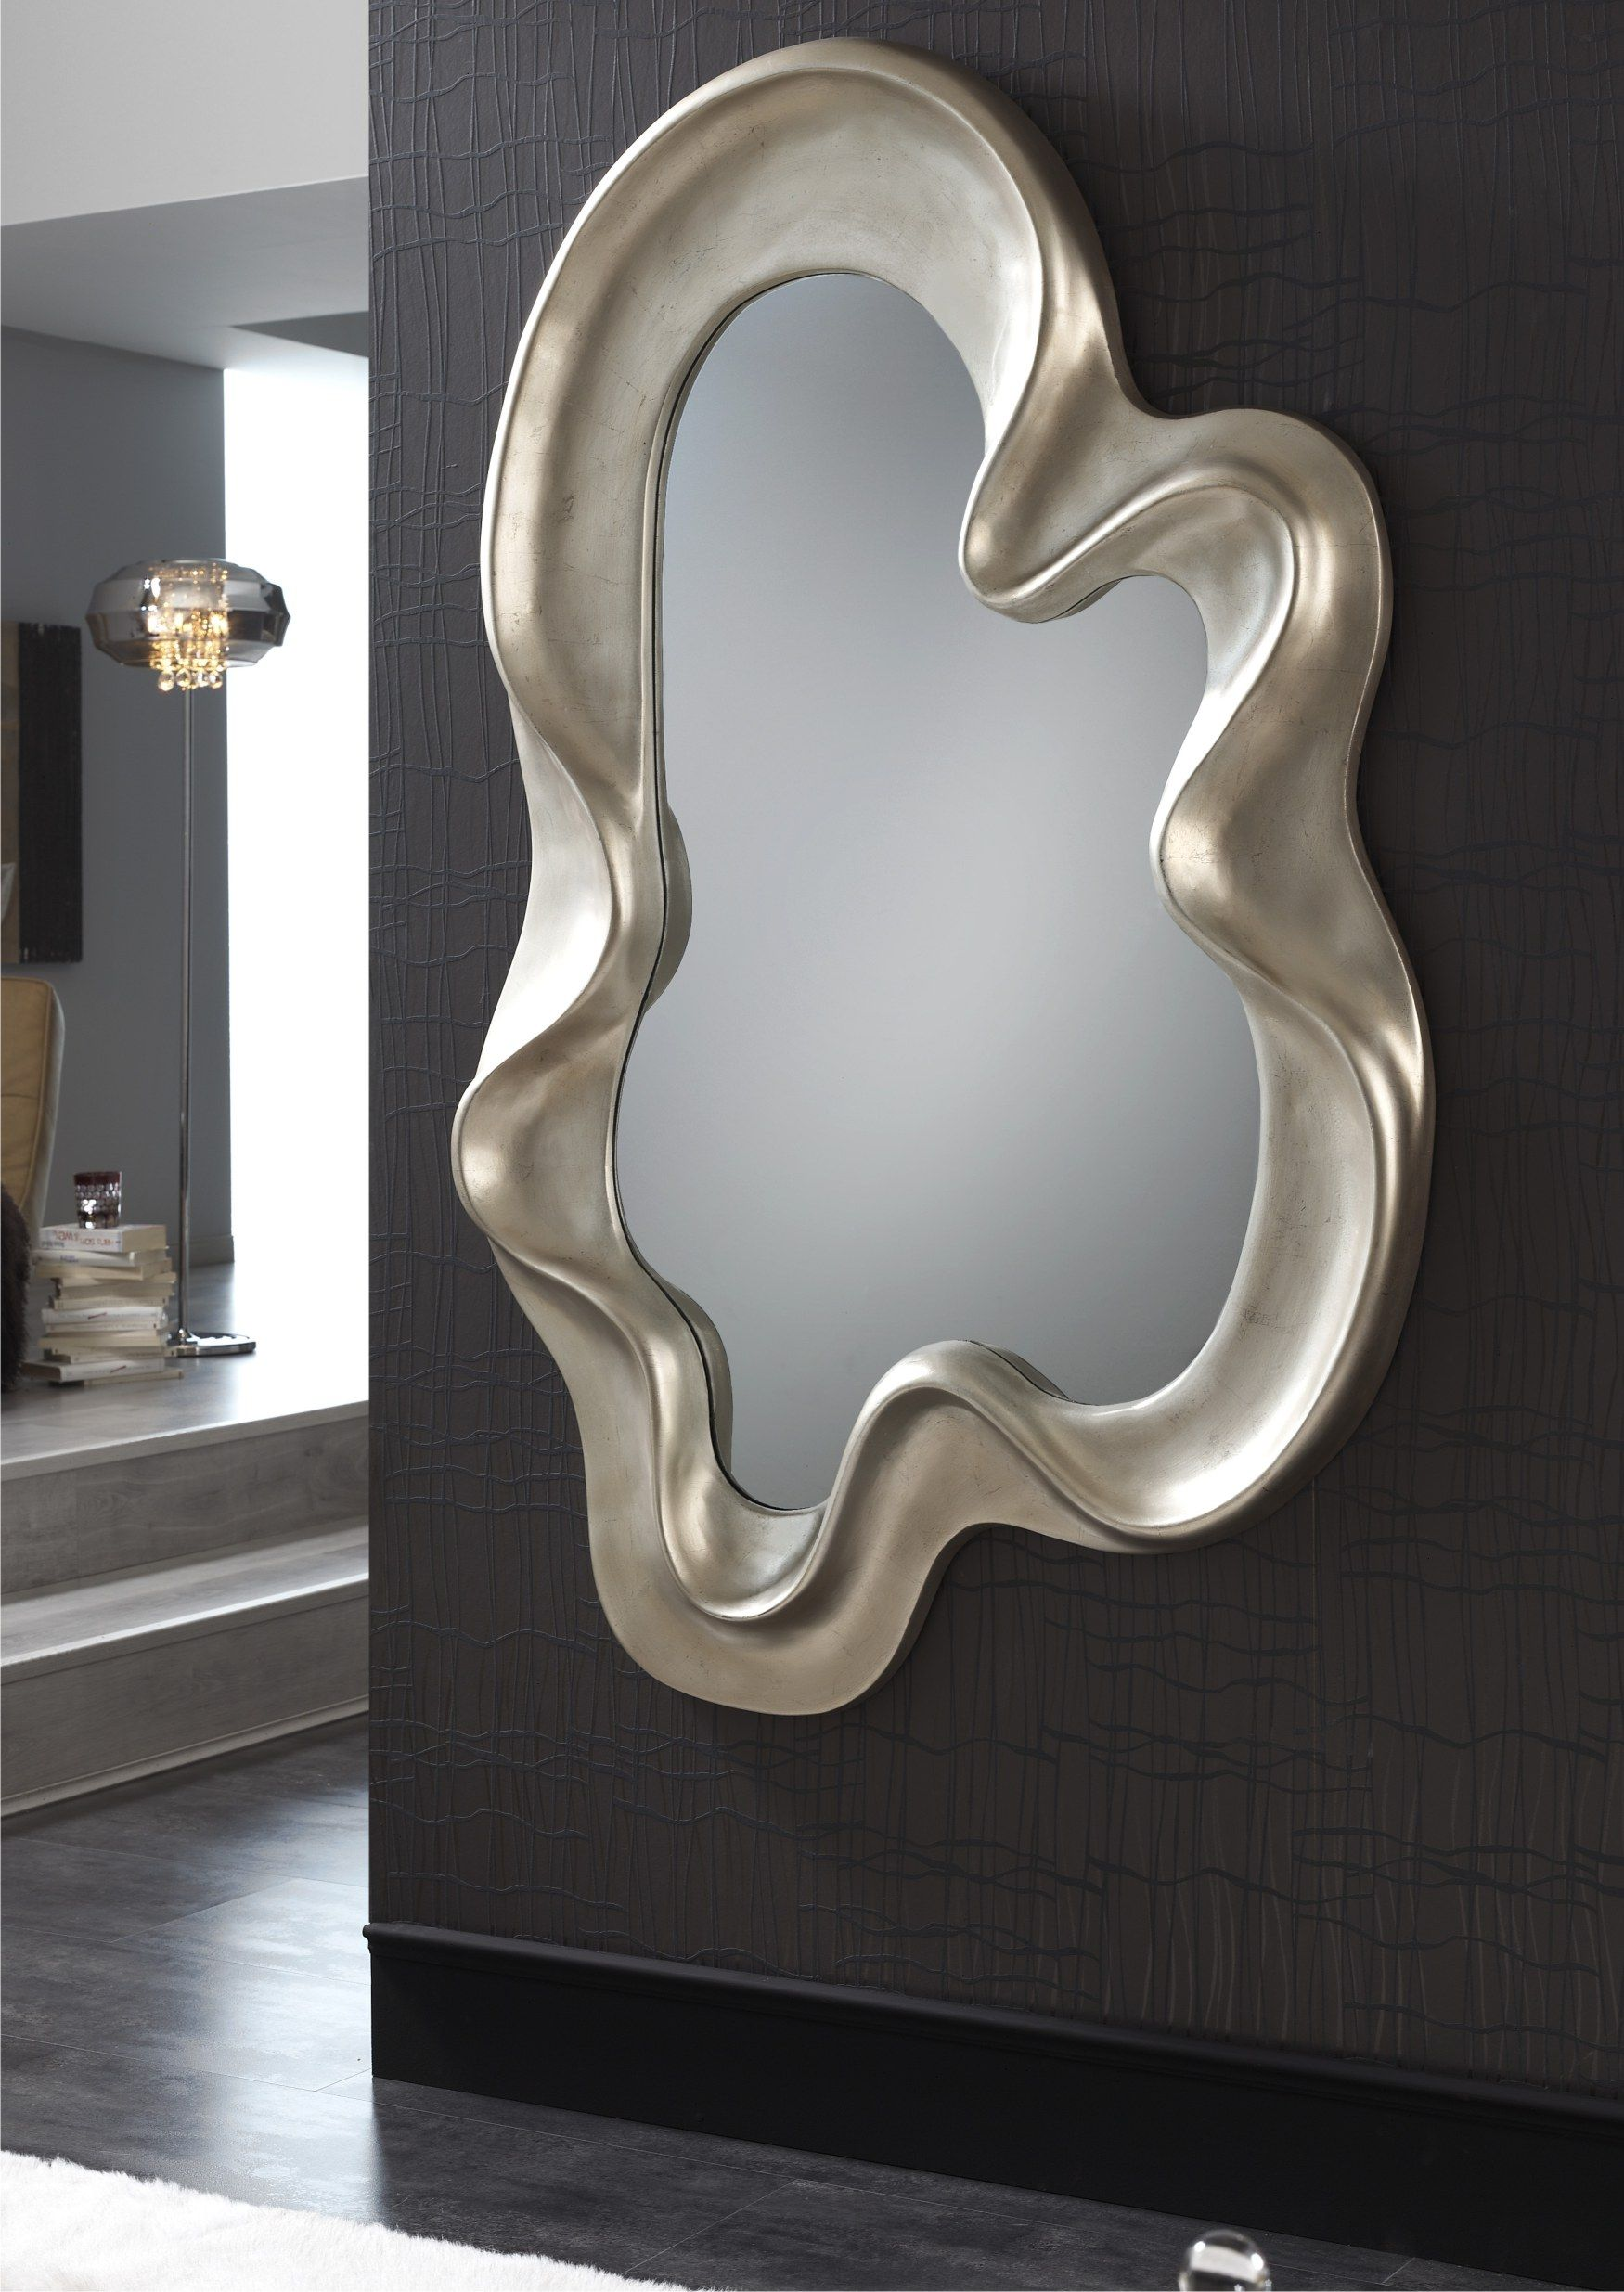 Espejo orion espejos pinterest mirror cool mirrors for Espejos decorativos baratos online